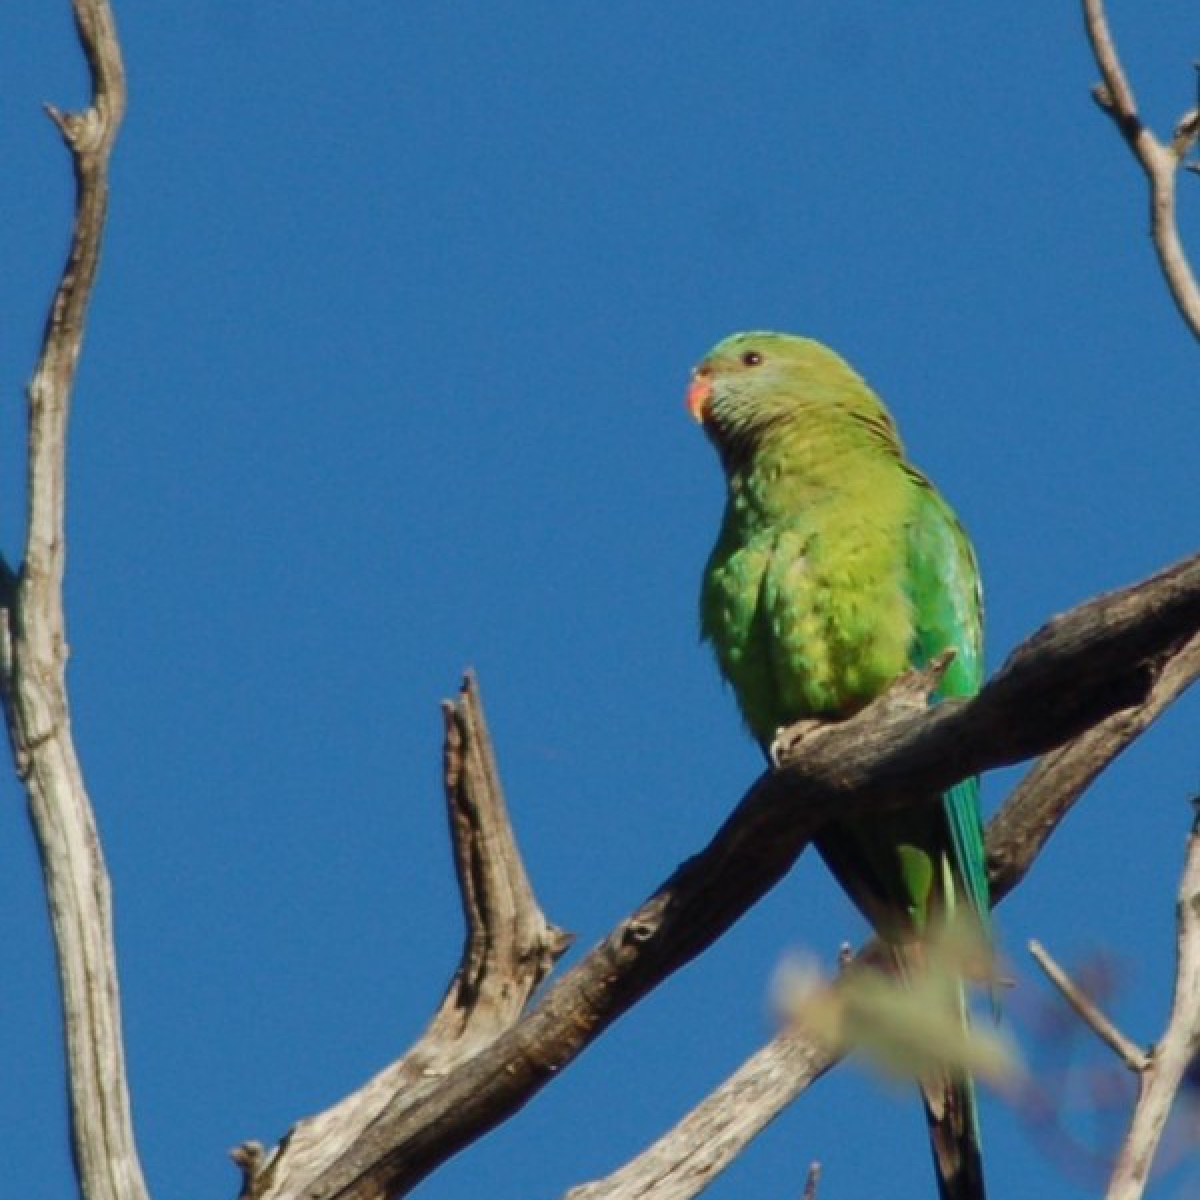 445 Superb Parrot (female)